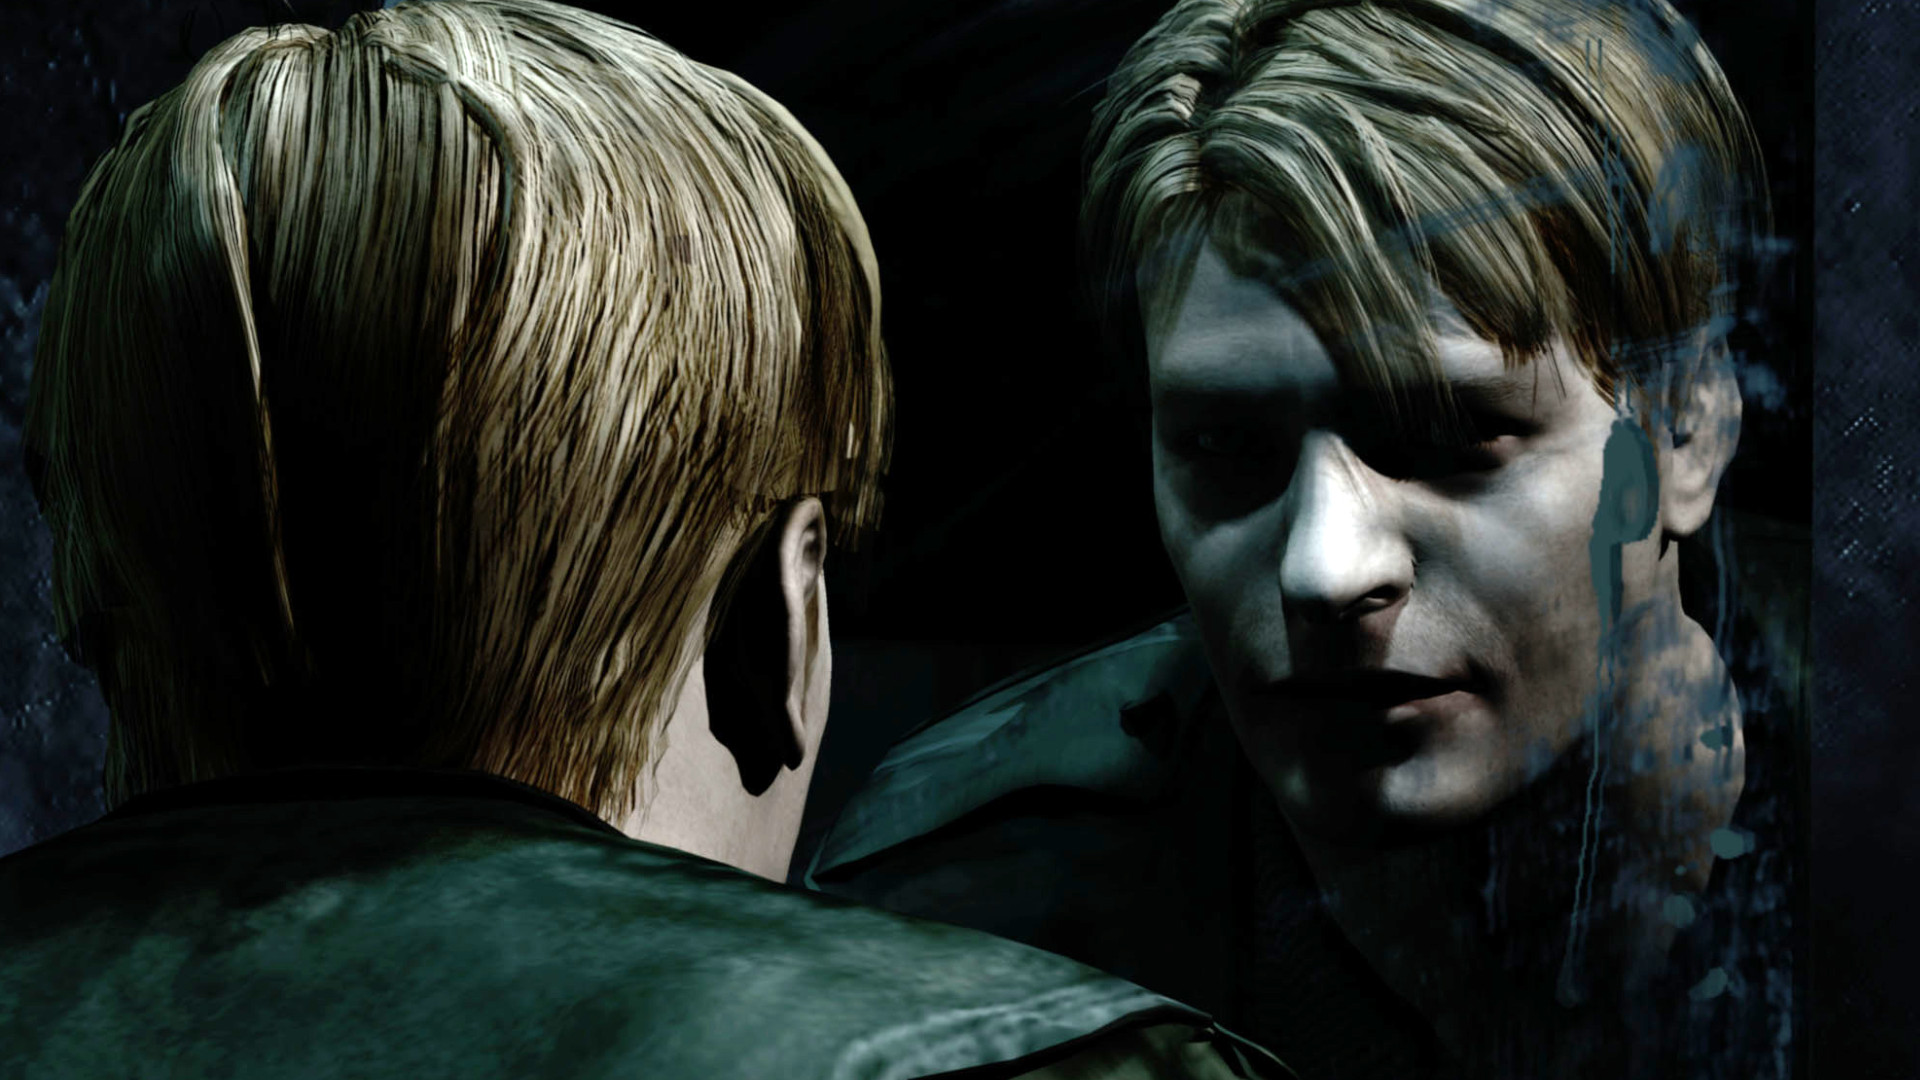 There are reportedly at least two separate Silent Hill games in development